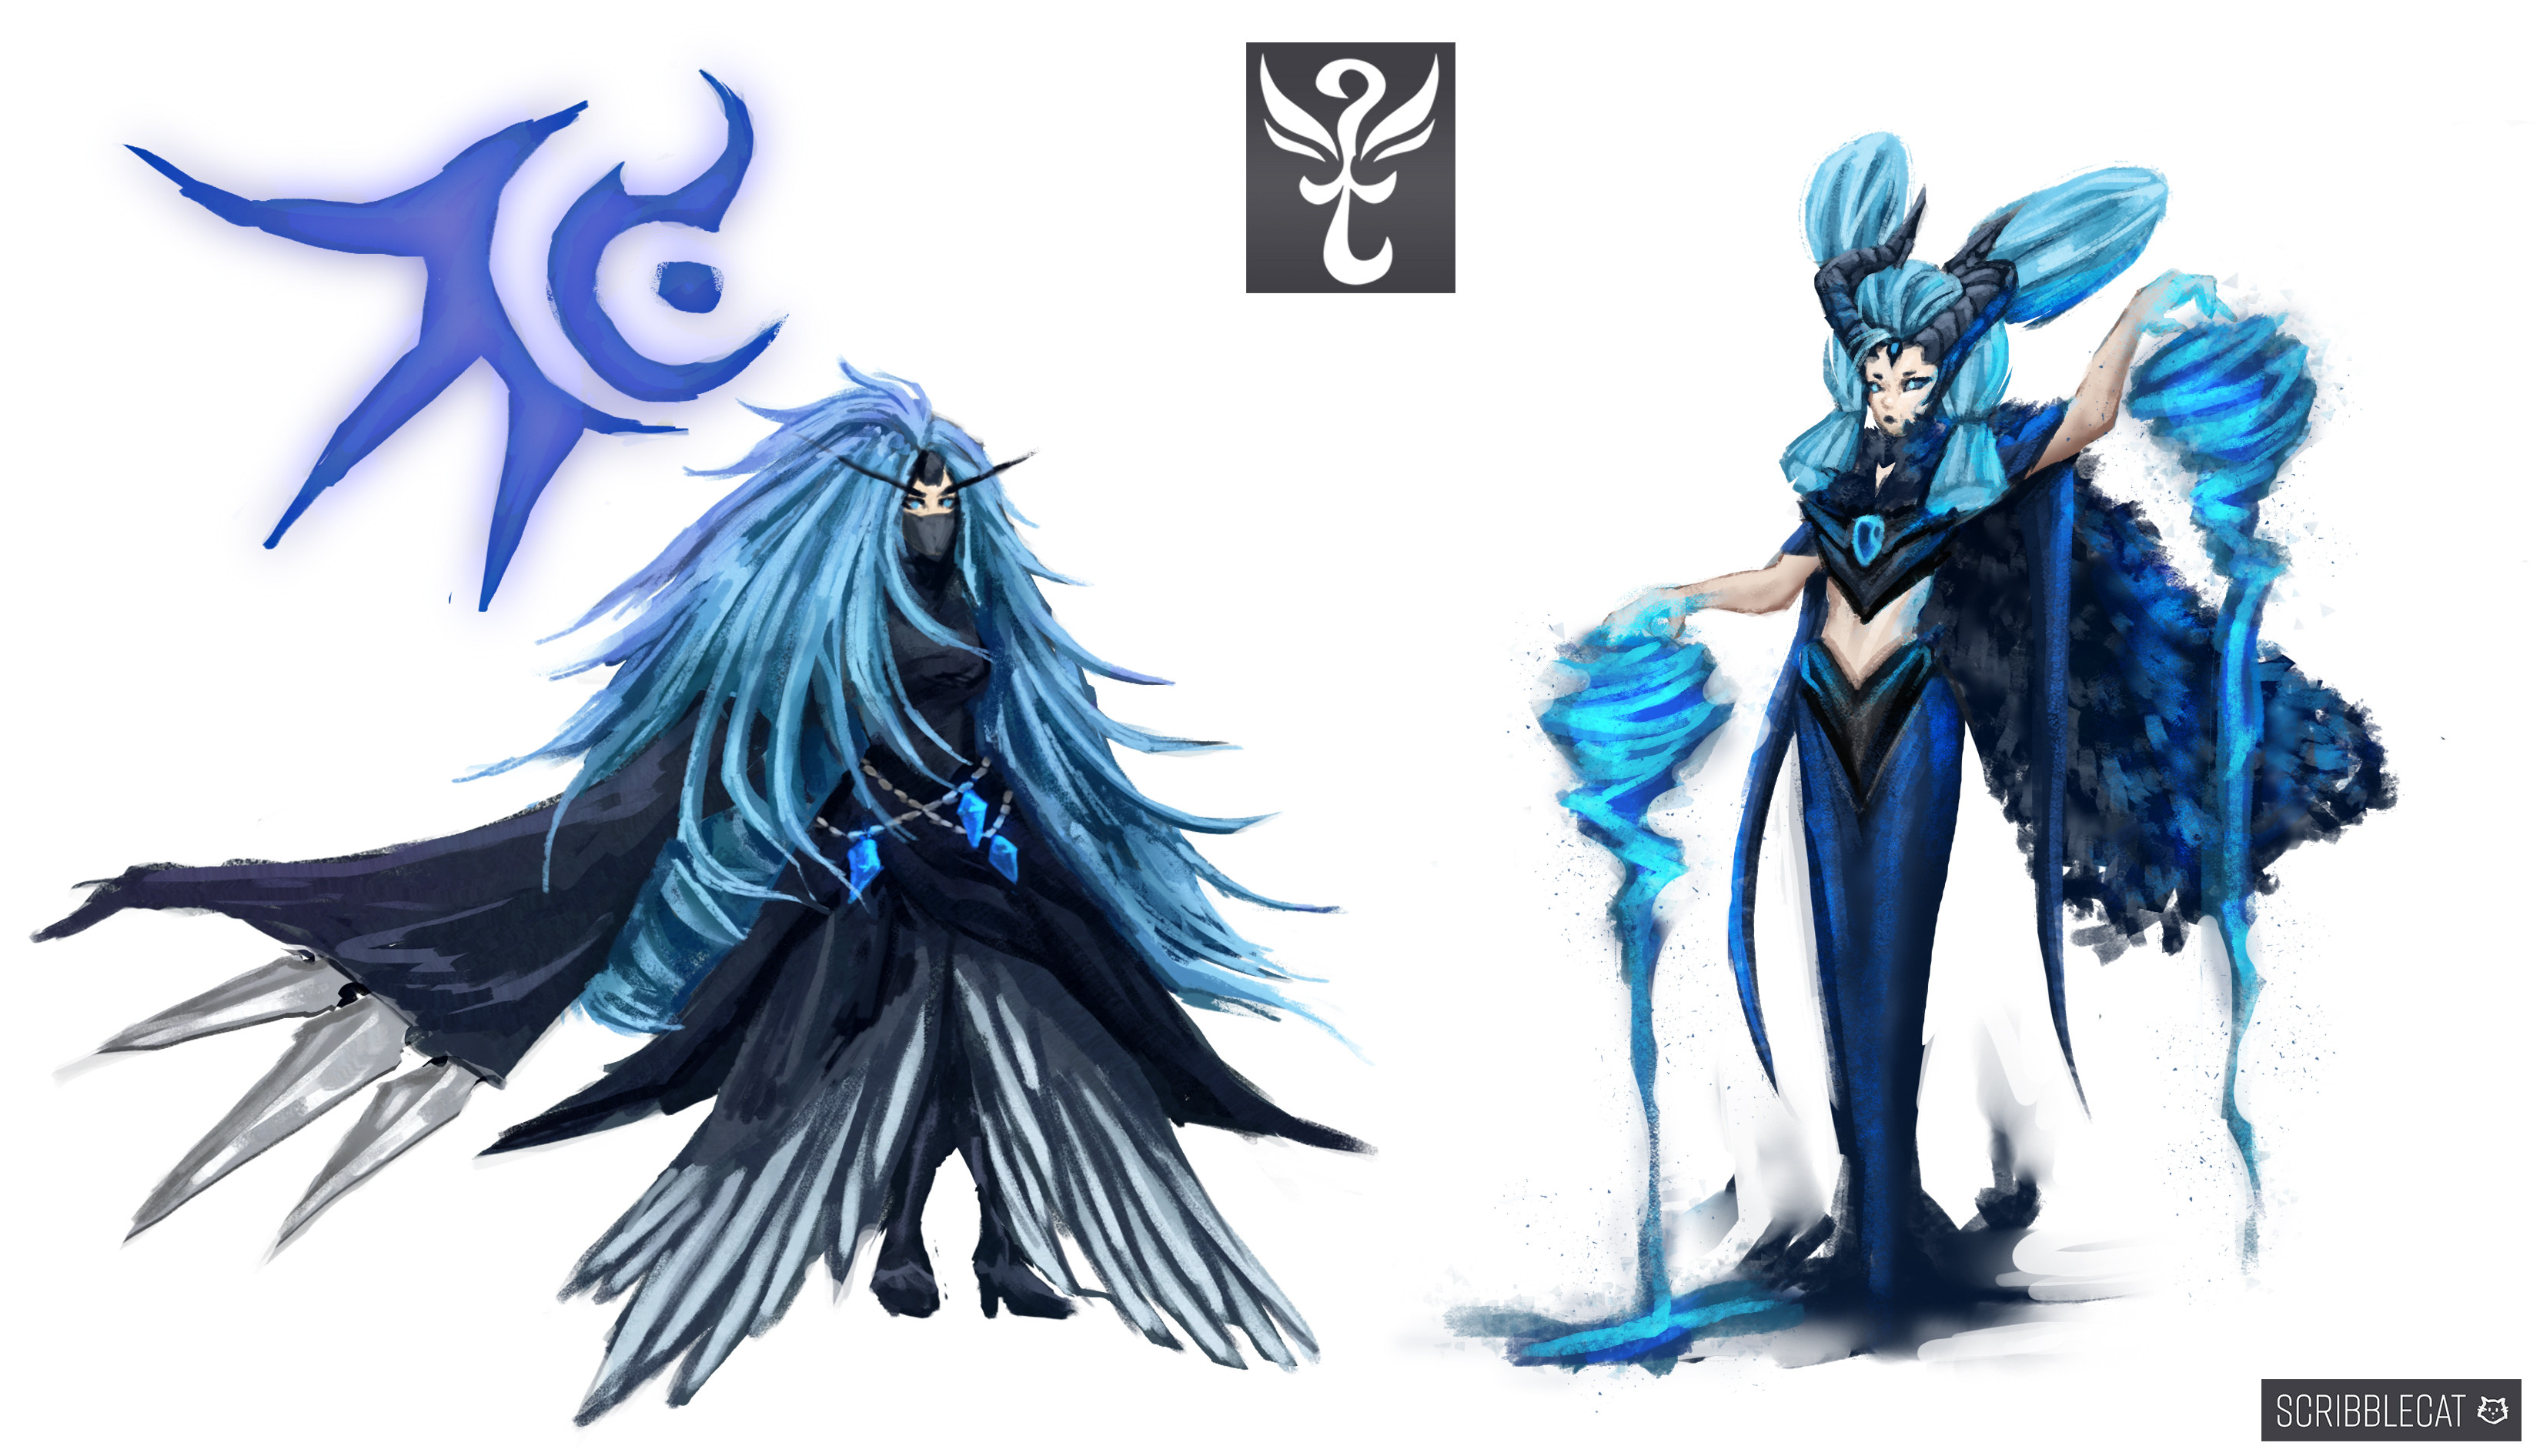 Iceborn character early exploration